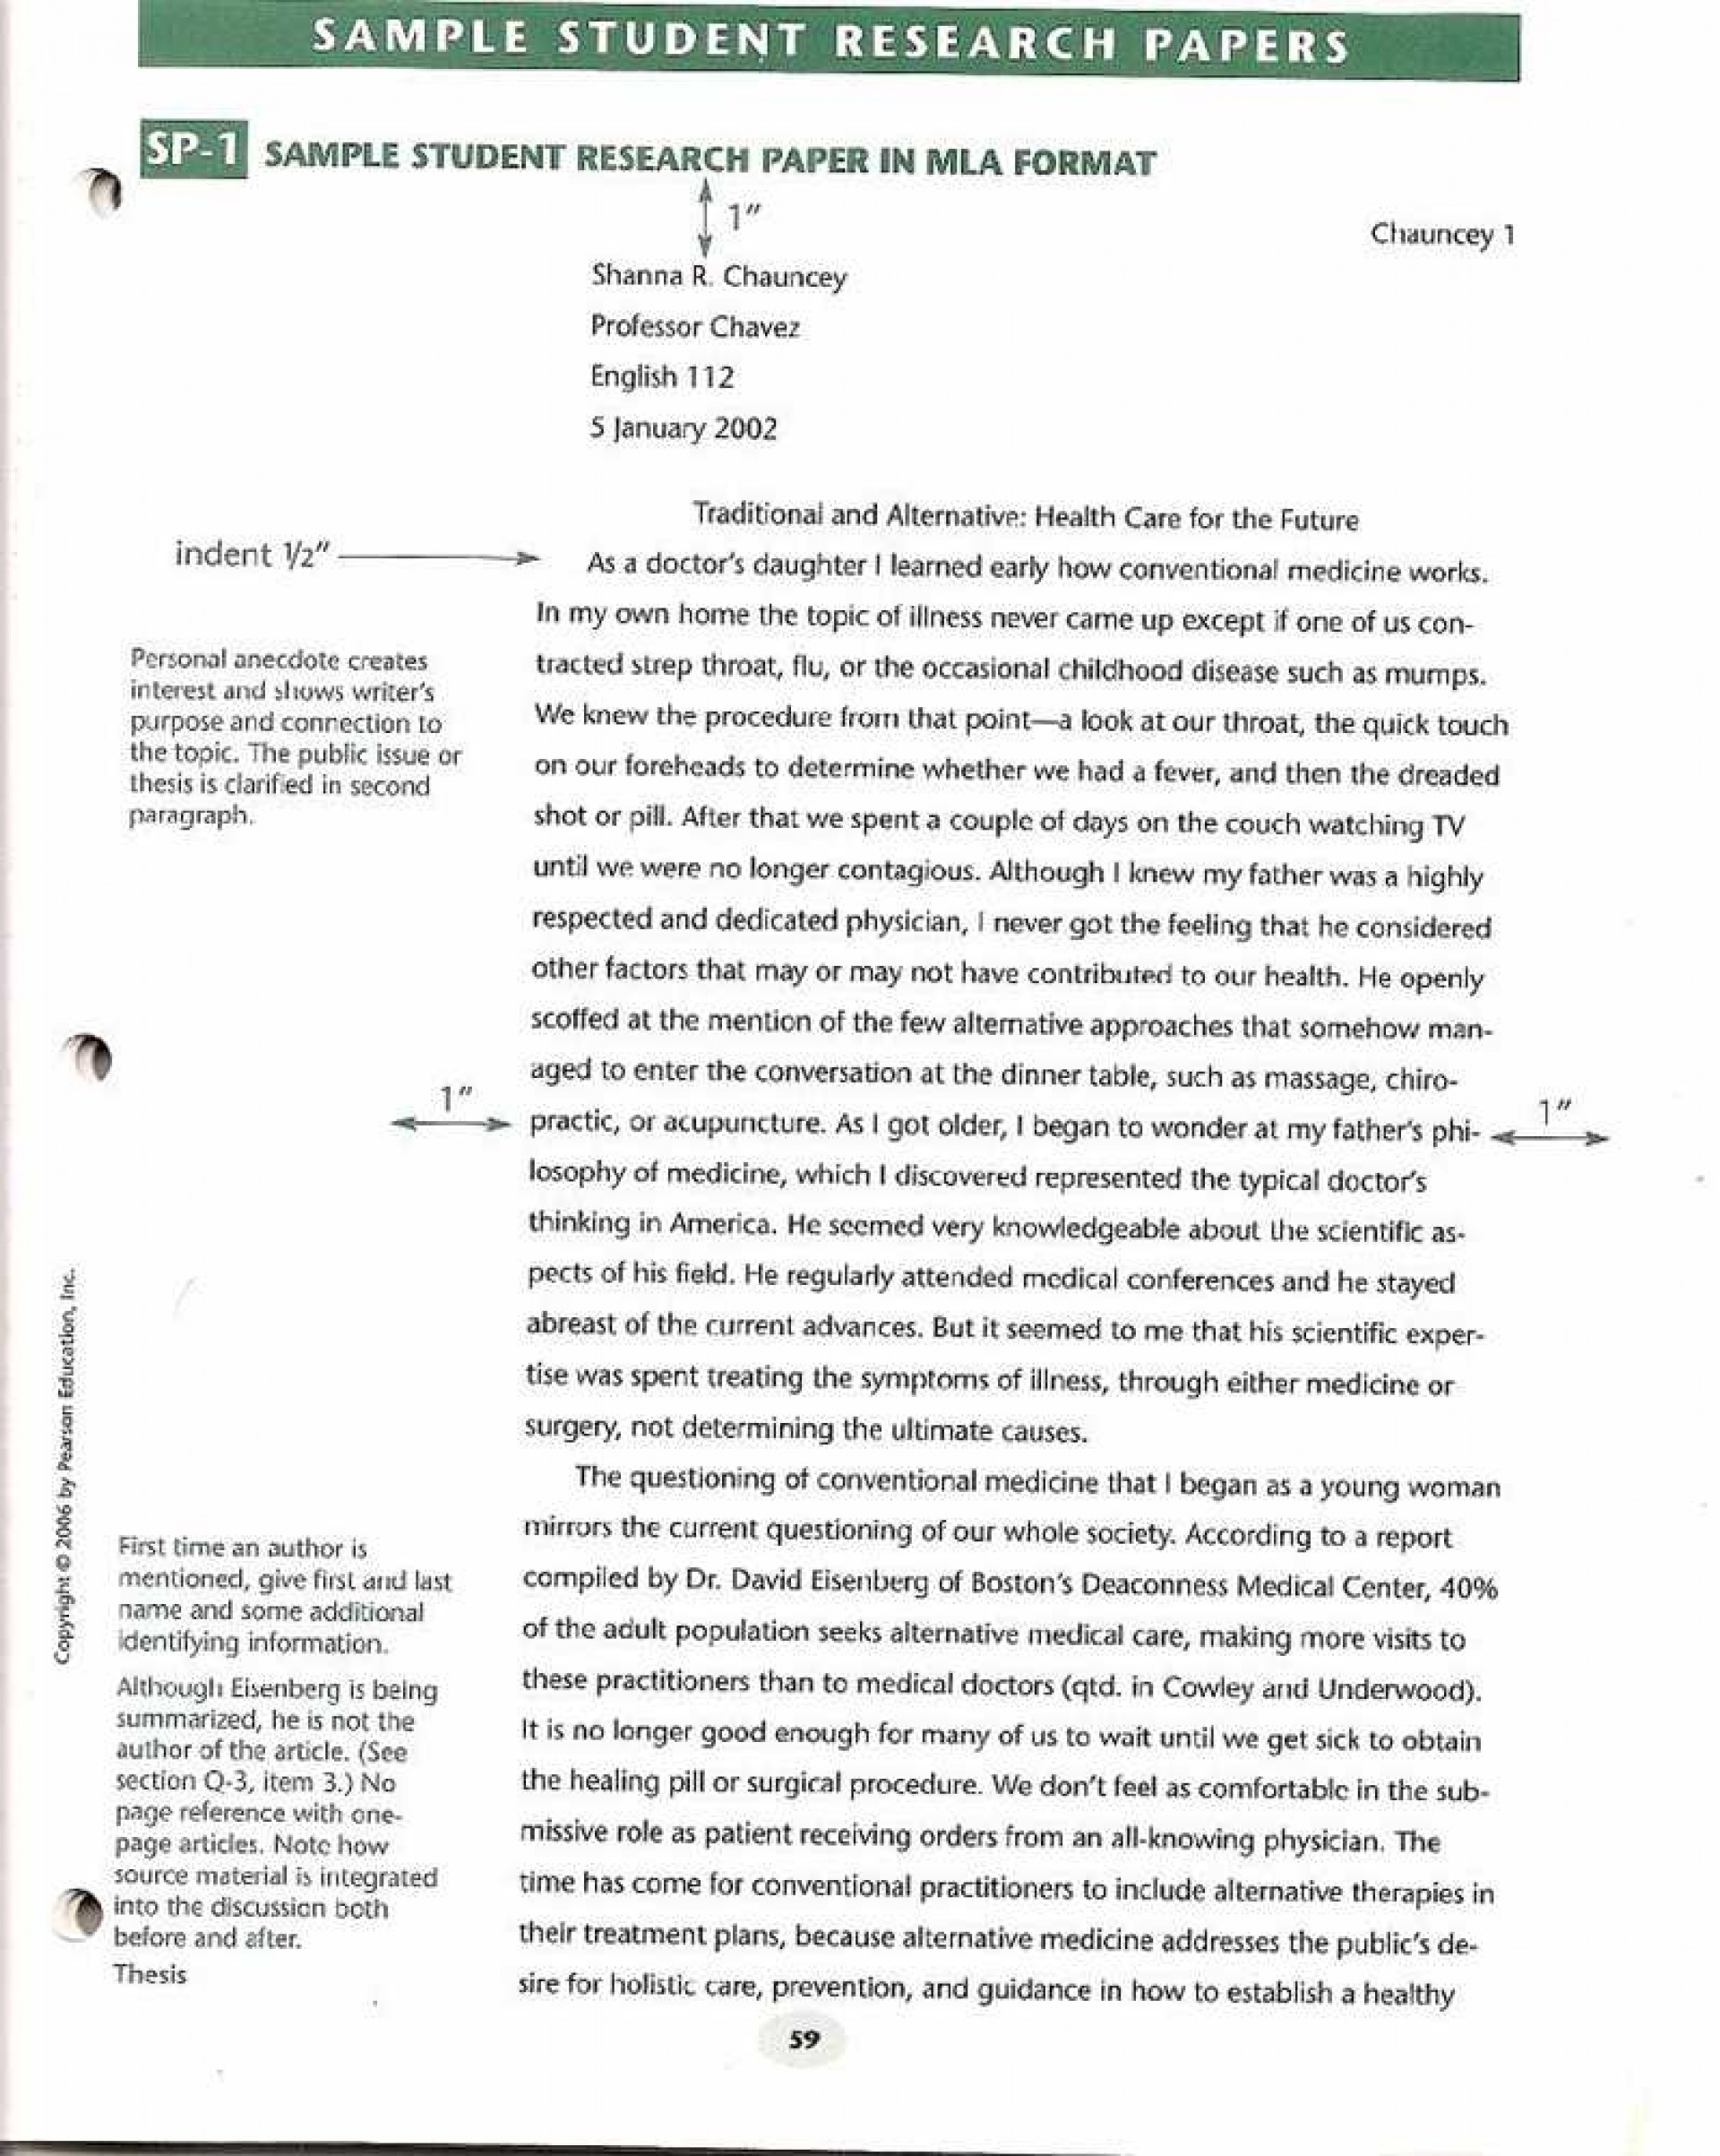 007 Sample Papper Research Paper Unusual Formatting Format Apa Template Mla Style 1920